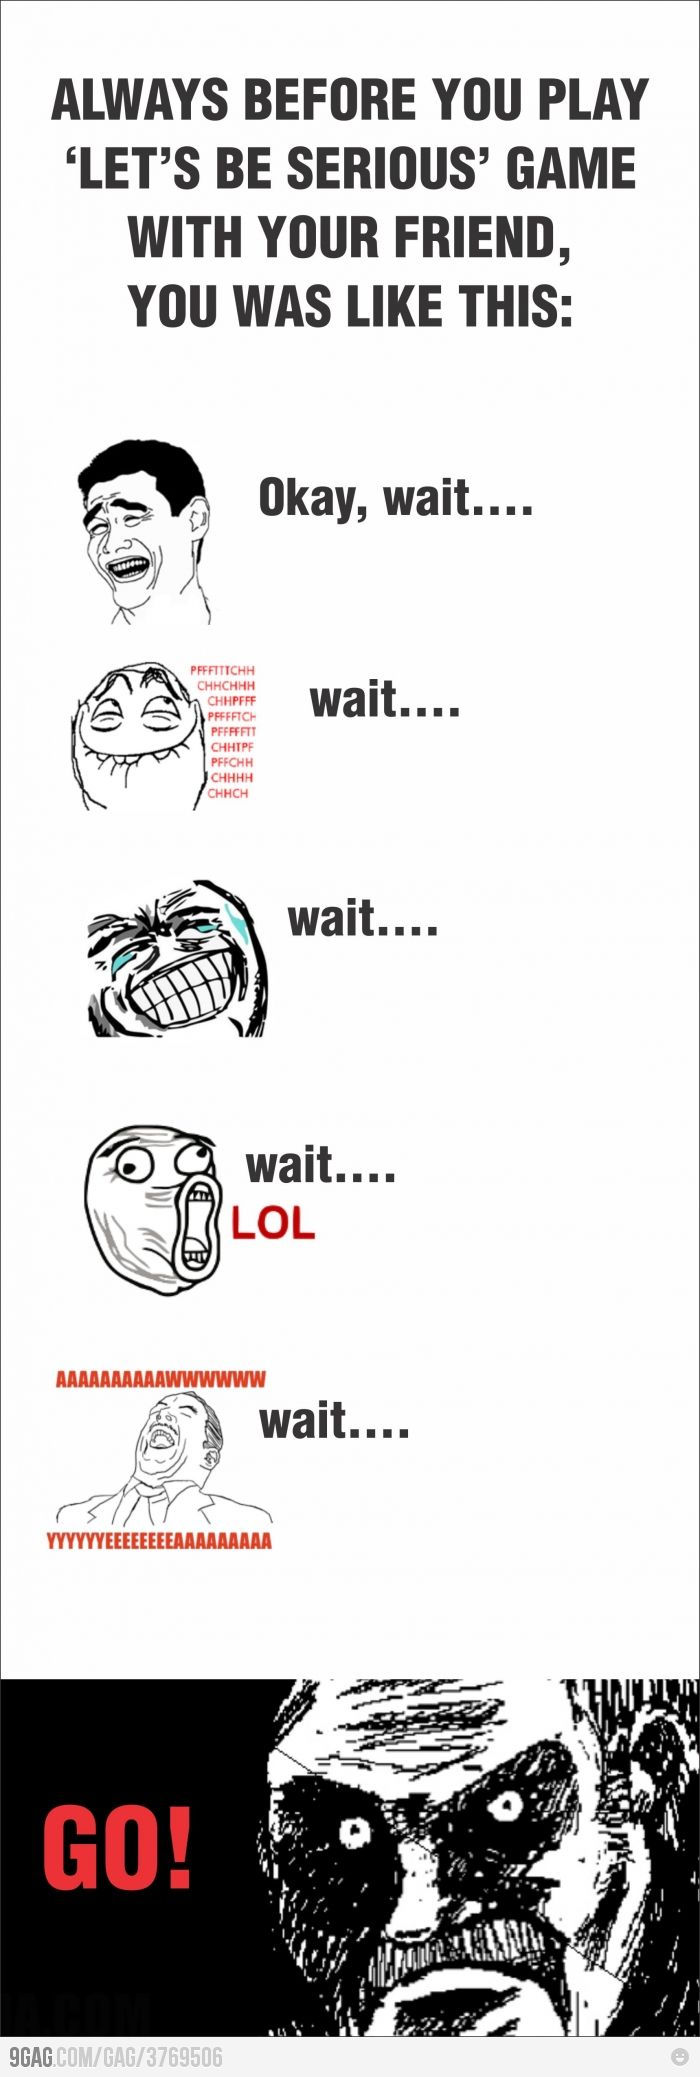 Laugh, Funny Pictures, Funny Stuff, So True, Serious Friends, Random Stuff, Funny Memes, True Stories, Giggles